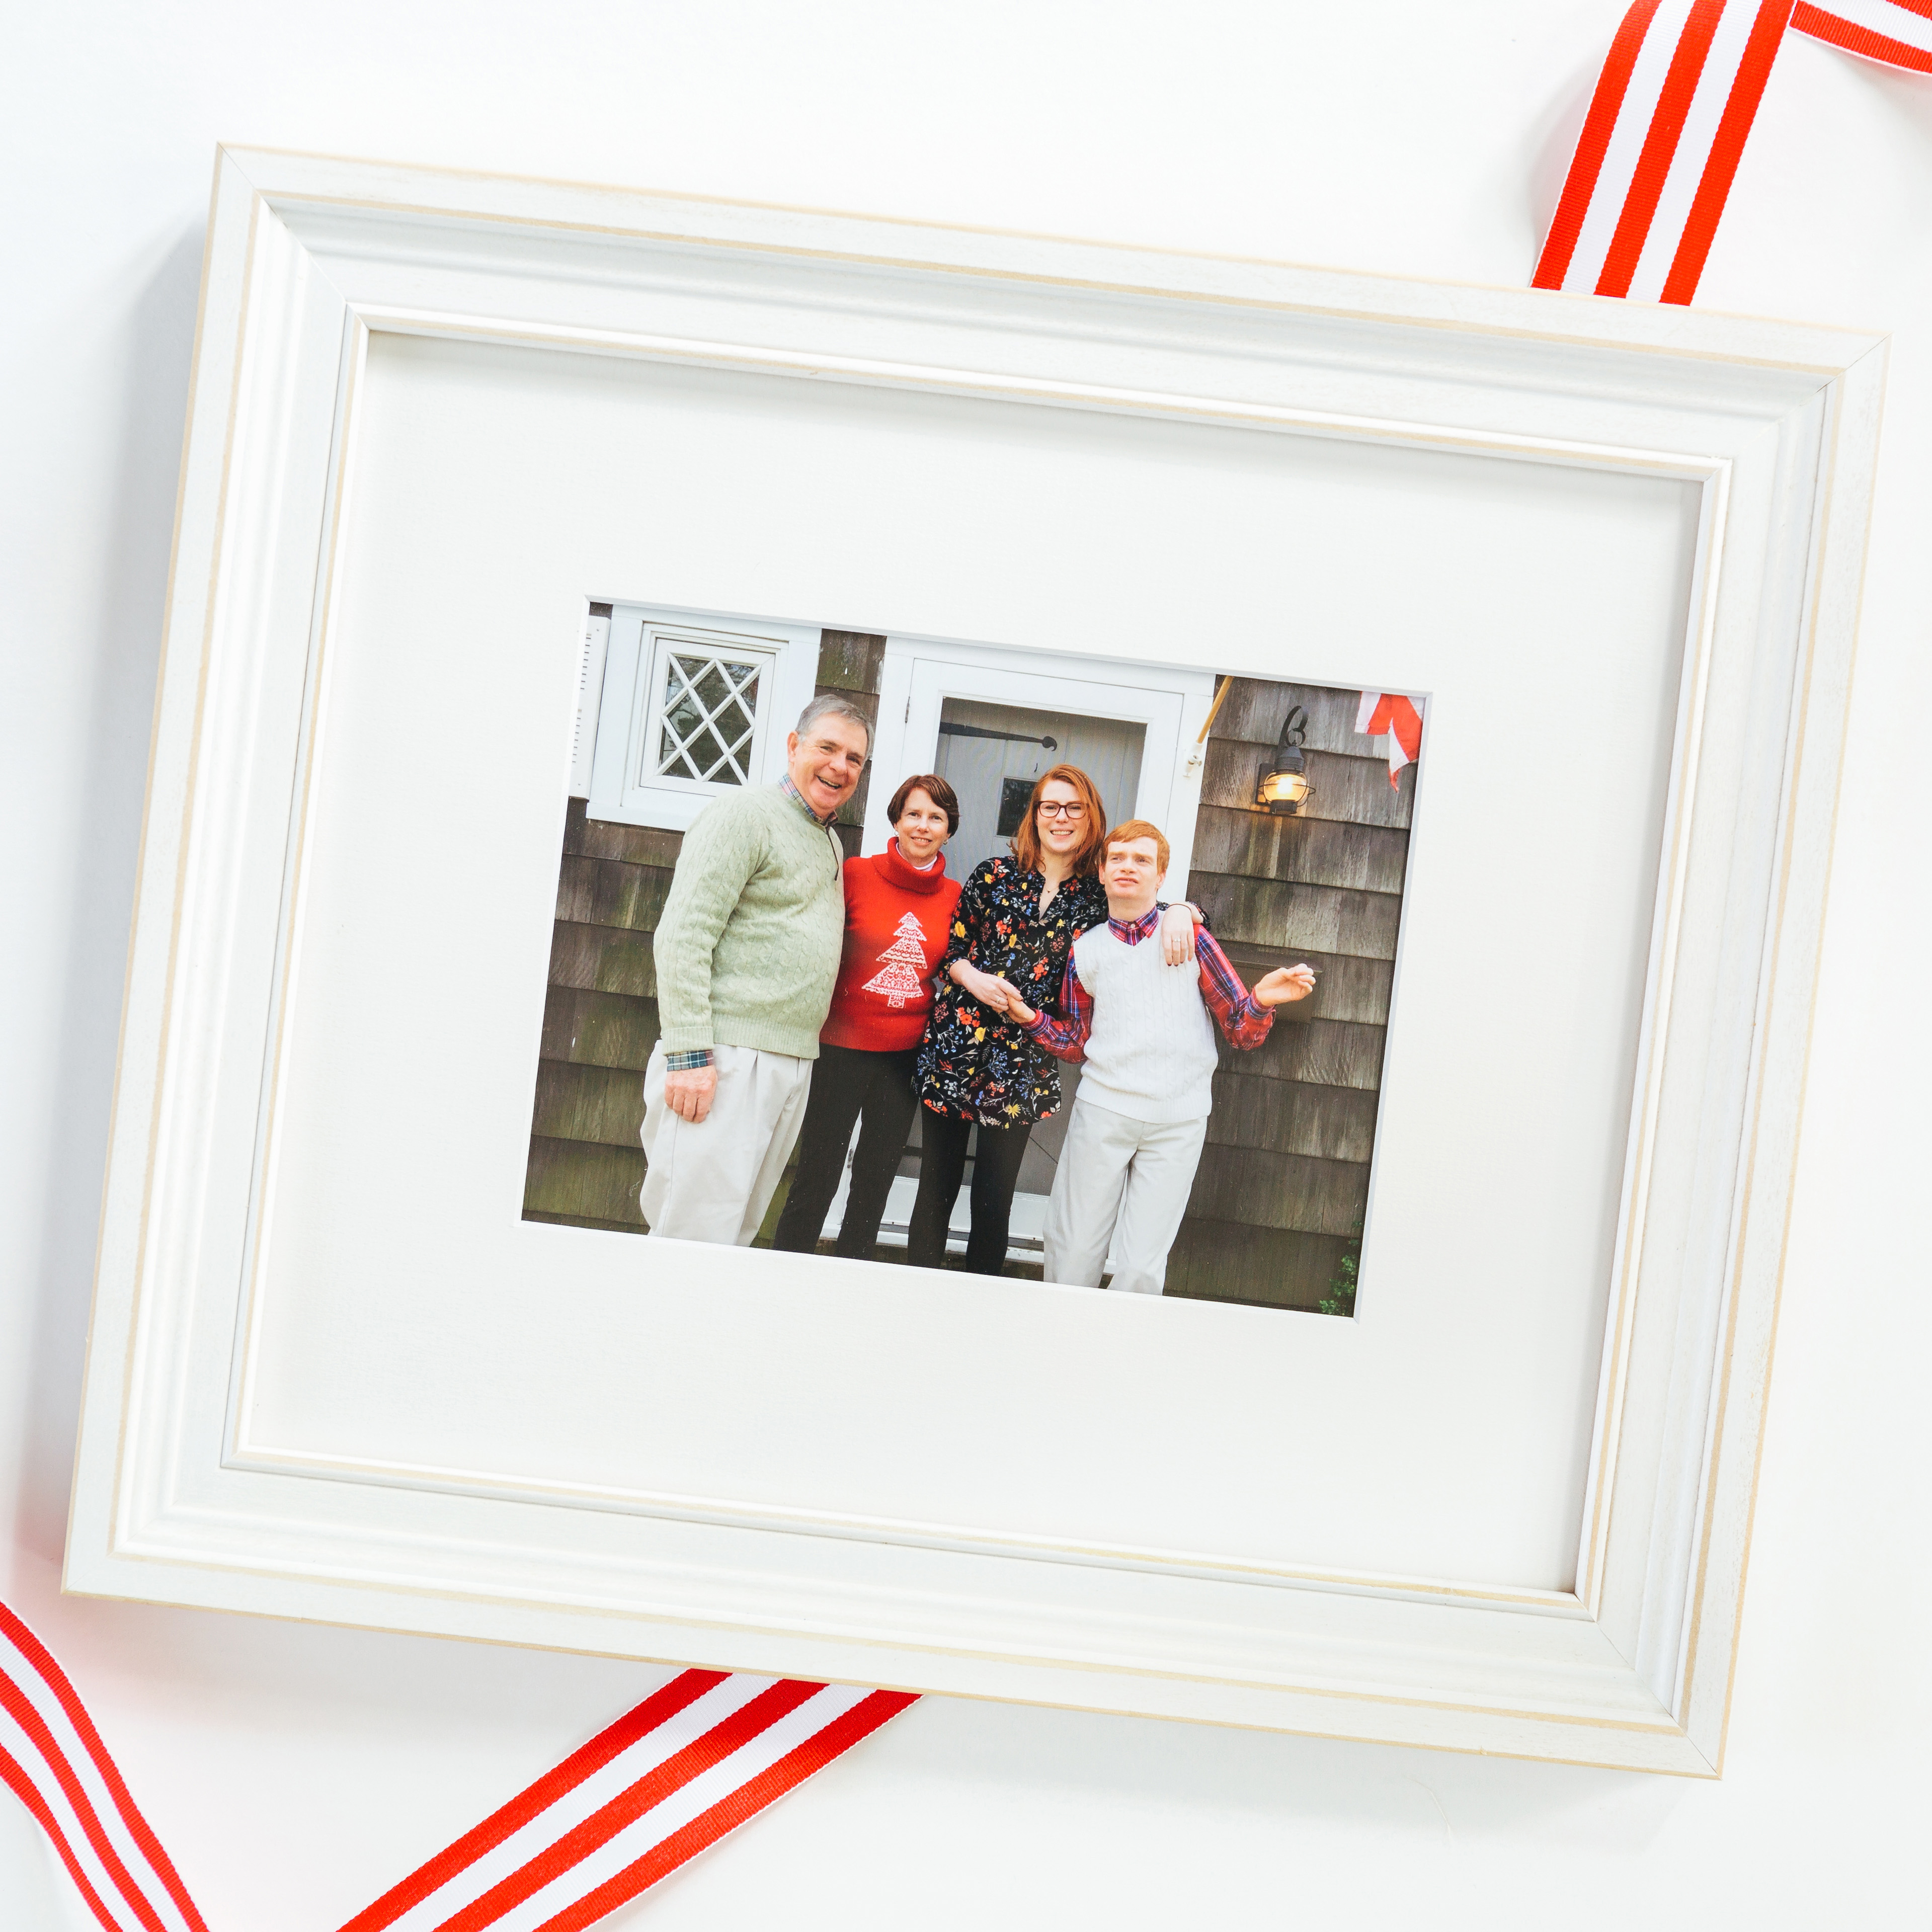 Family Photo in White Montauk Frame